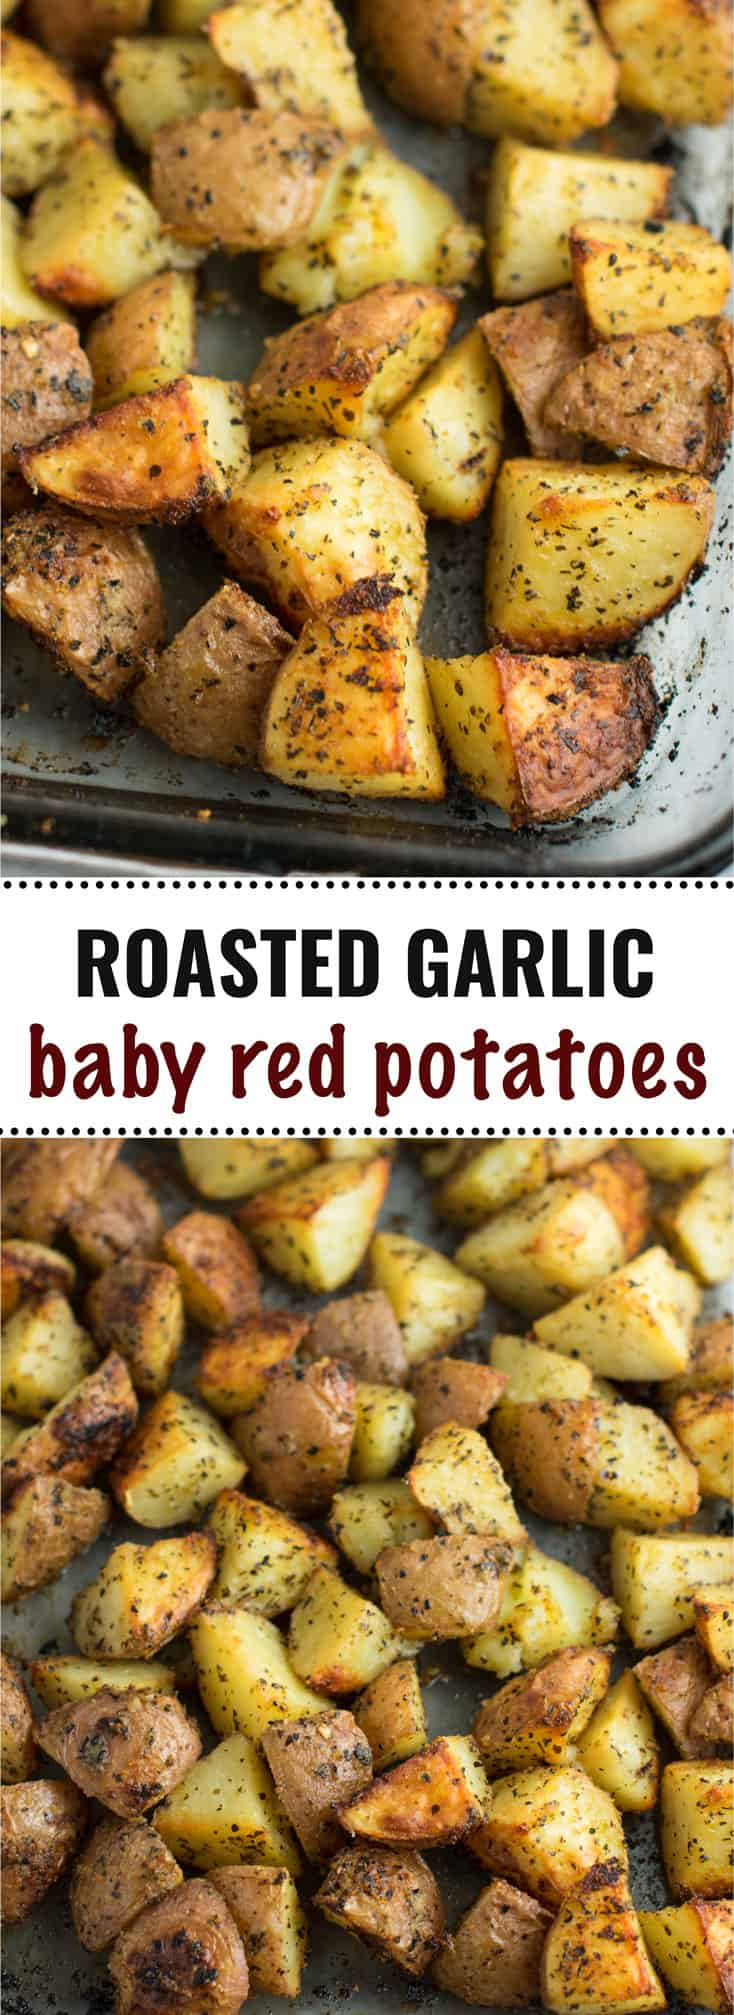 Roasted Baby Red Potatoes  Roasted Baby Red Potatoes Recipe Build Your Bite